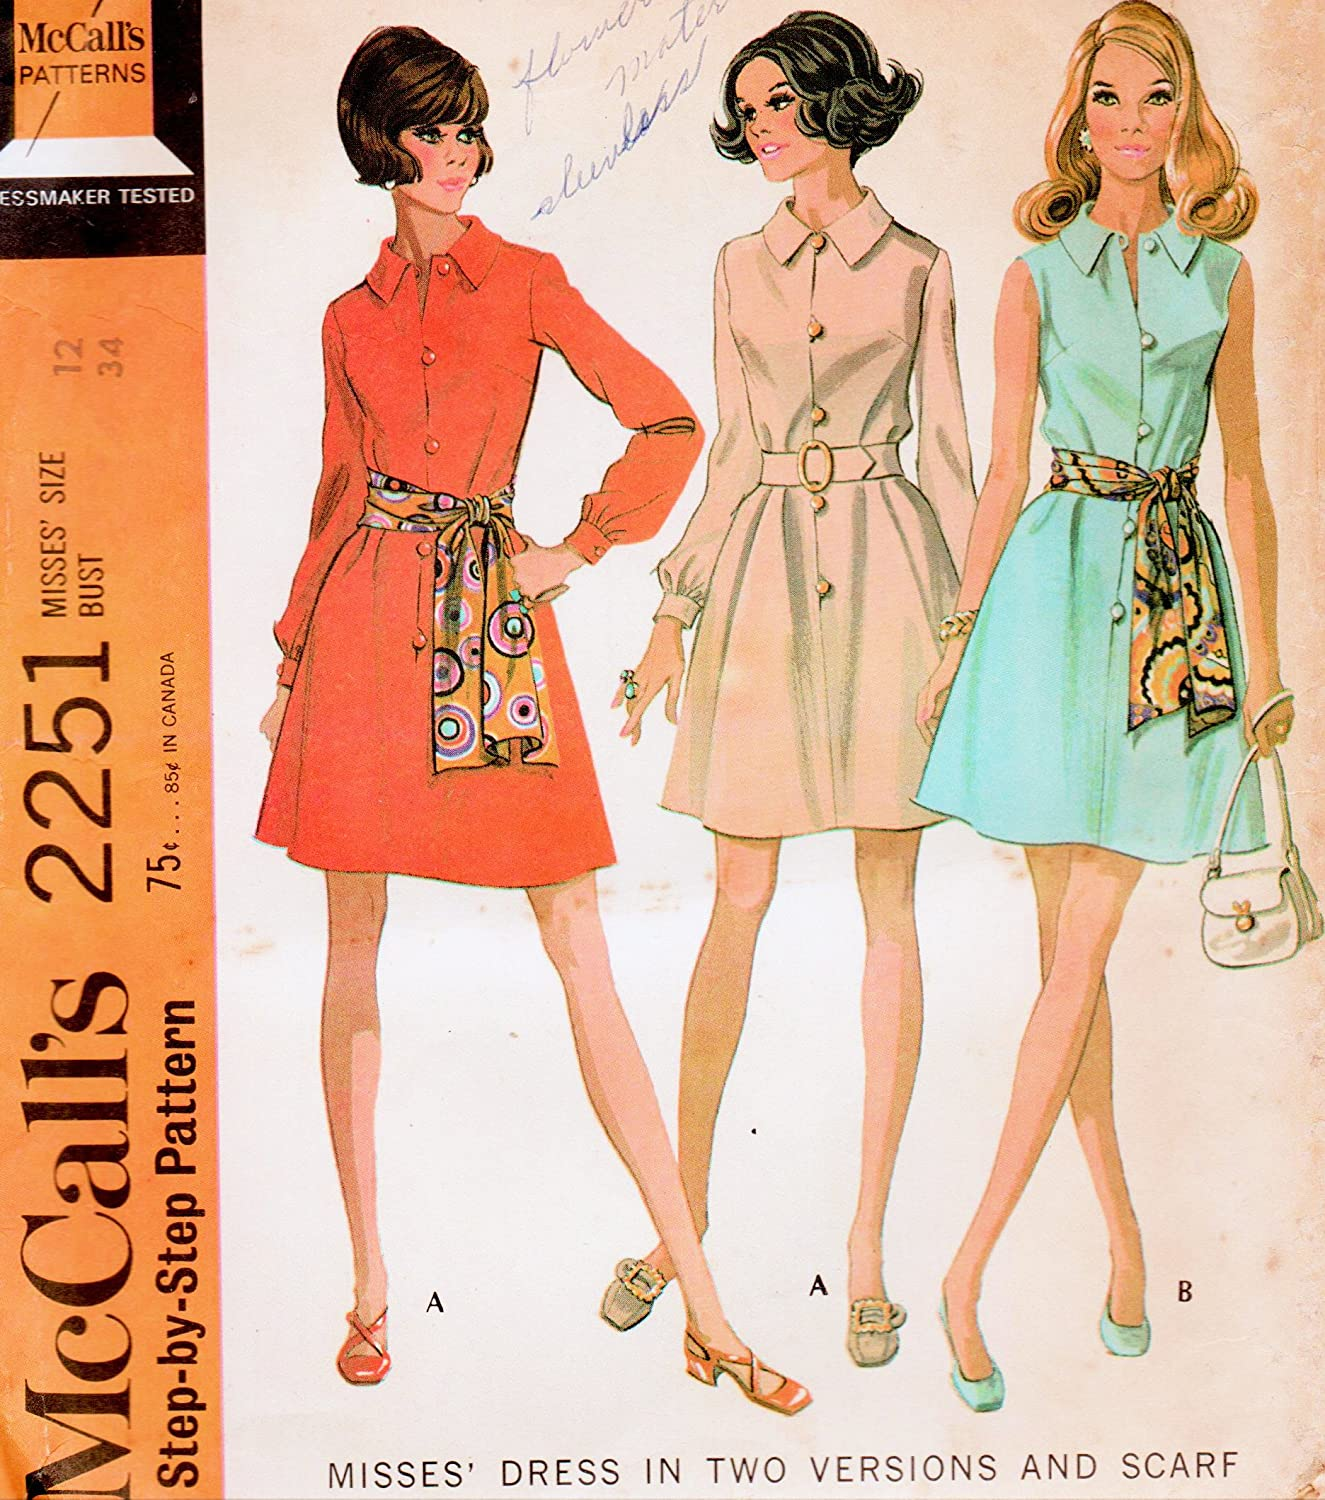 9140de4e500de Amazon.com: Vintage McCall's Pattern 2251 Misses' Size 12 Bust 34 - Misses'  Dress In Two Versions And Scarf: McCall: Arts, Crafts & Sewing